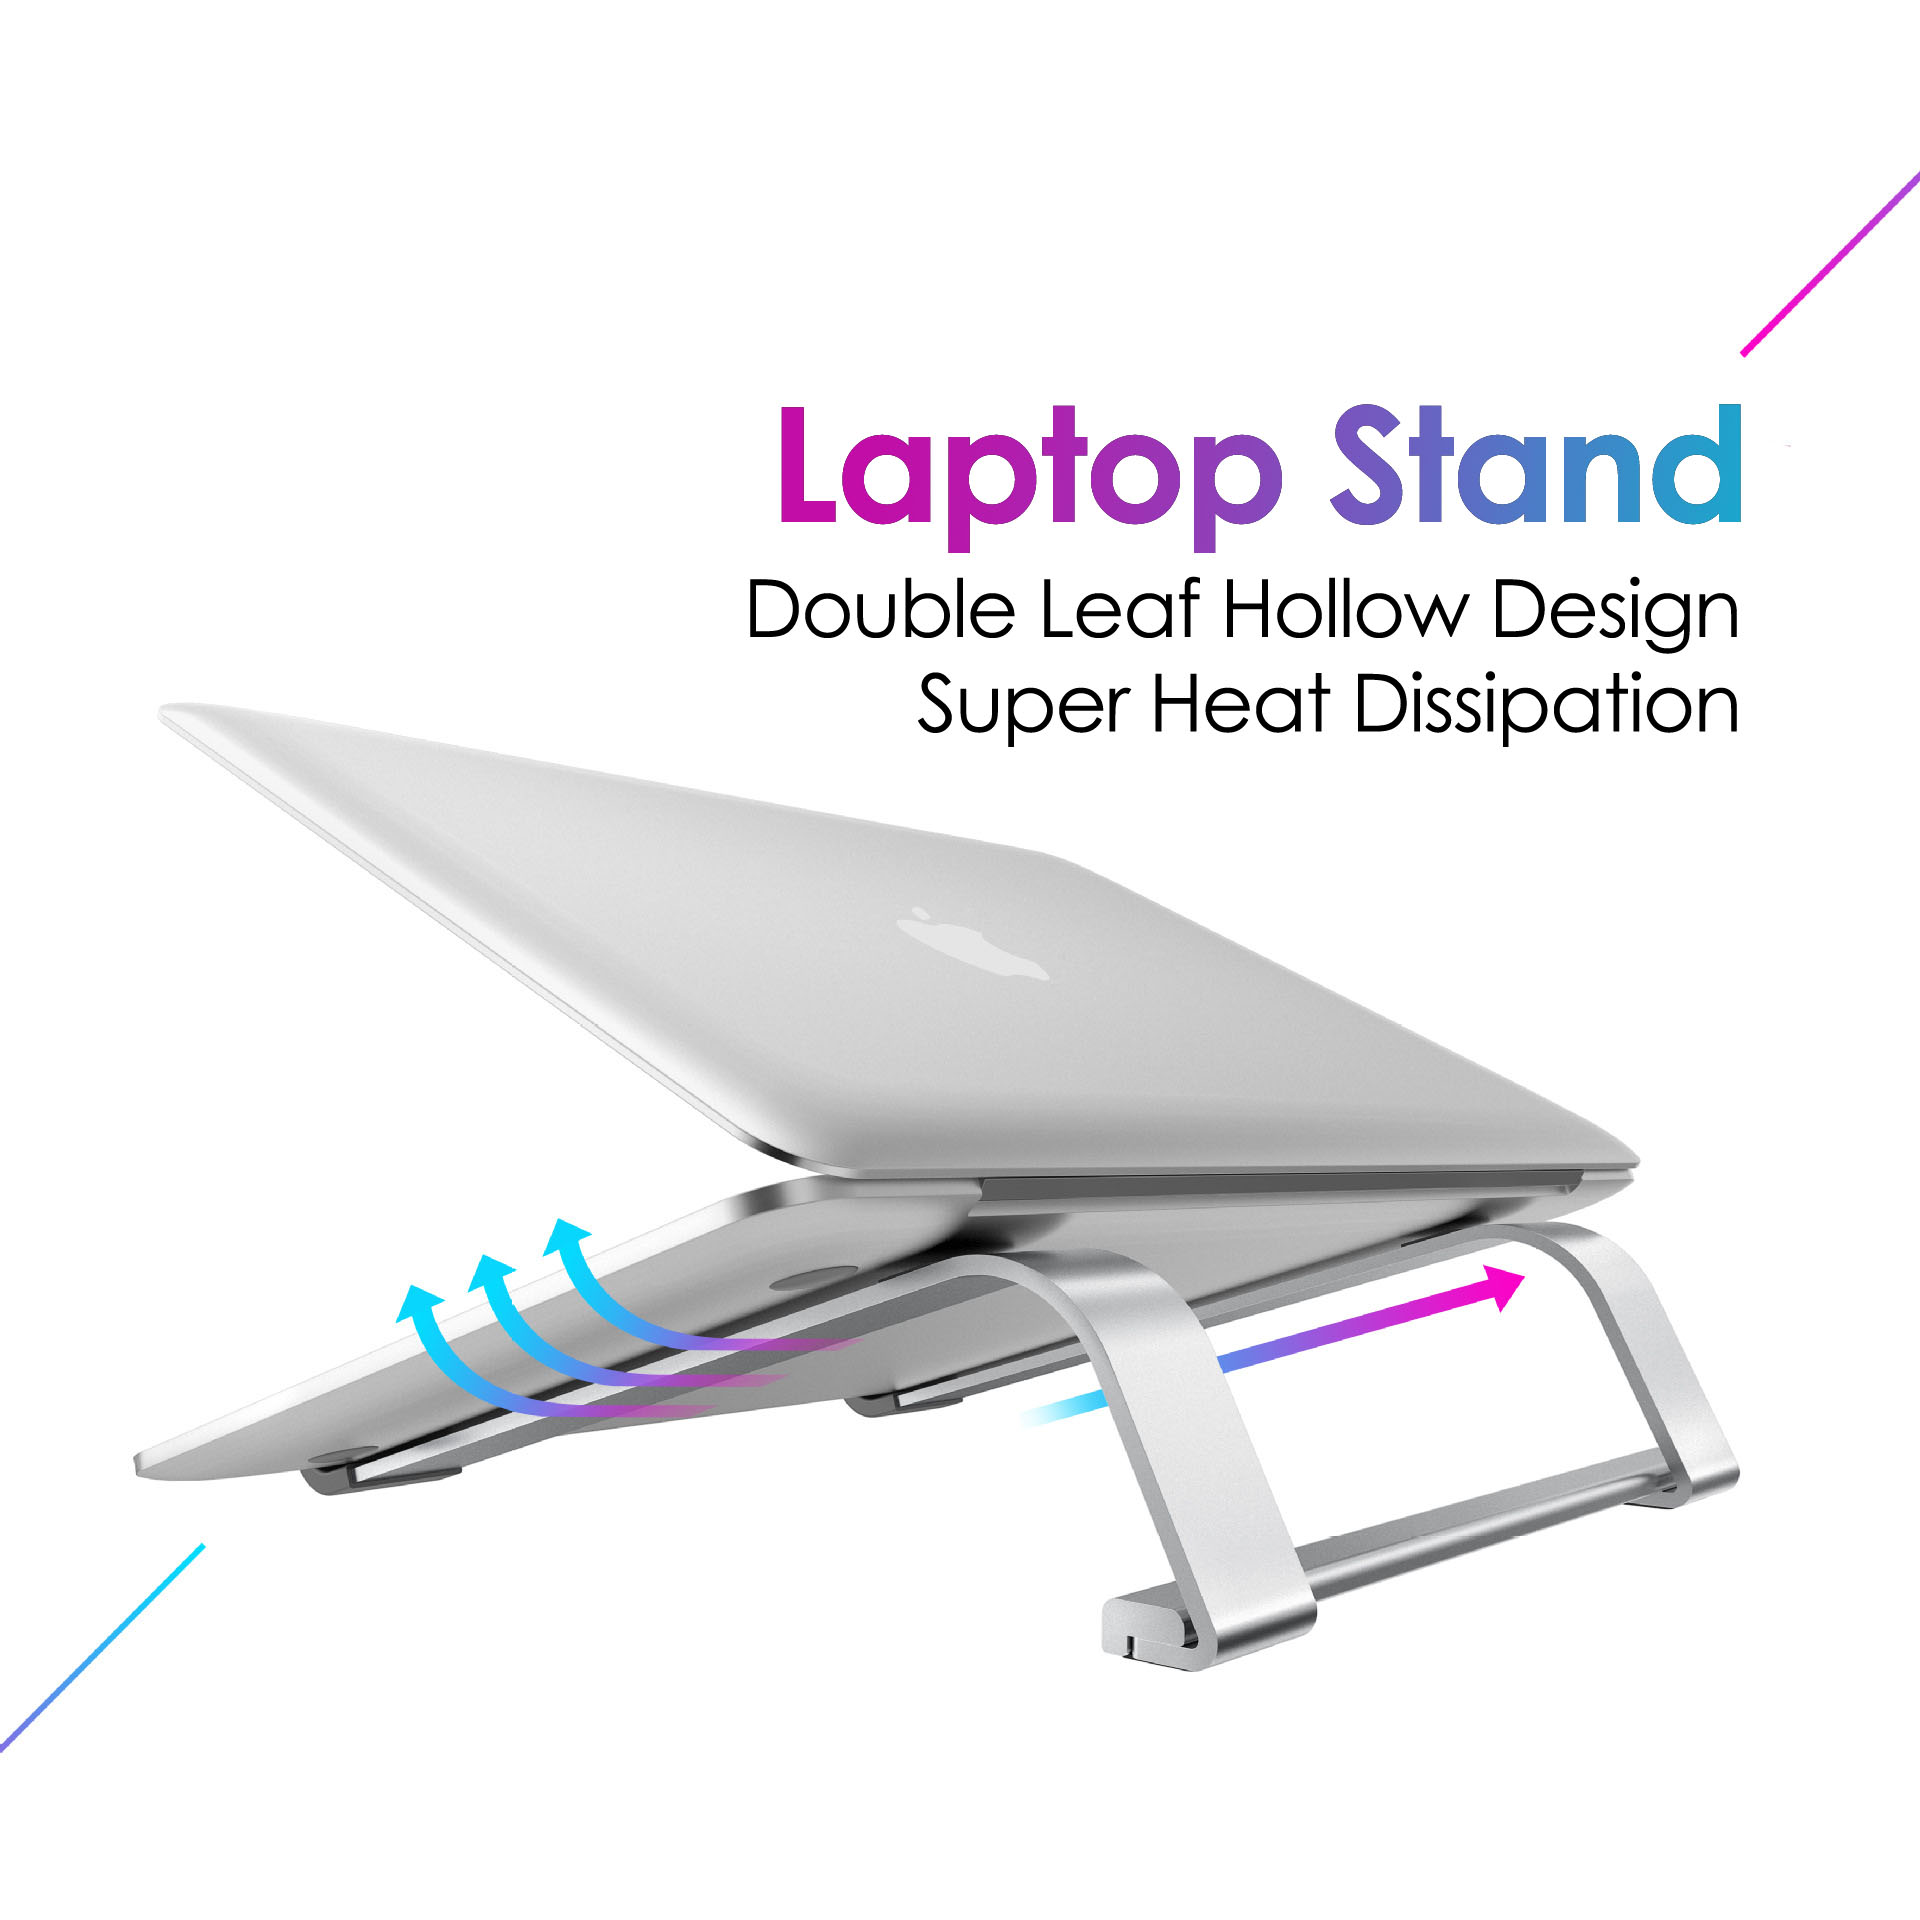 Aluminium Alloy Double Leaf Hollow Laptop Stand Desktop Tablet Holder Desk Mobile Phone Stand For IPad Macbook Pro Air Notebook